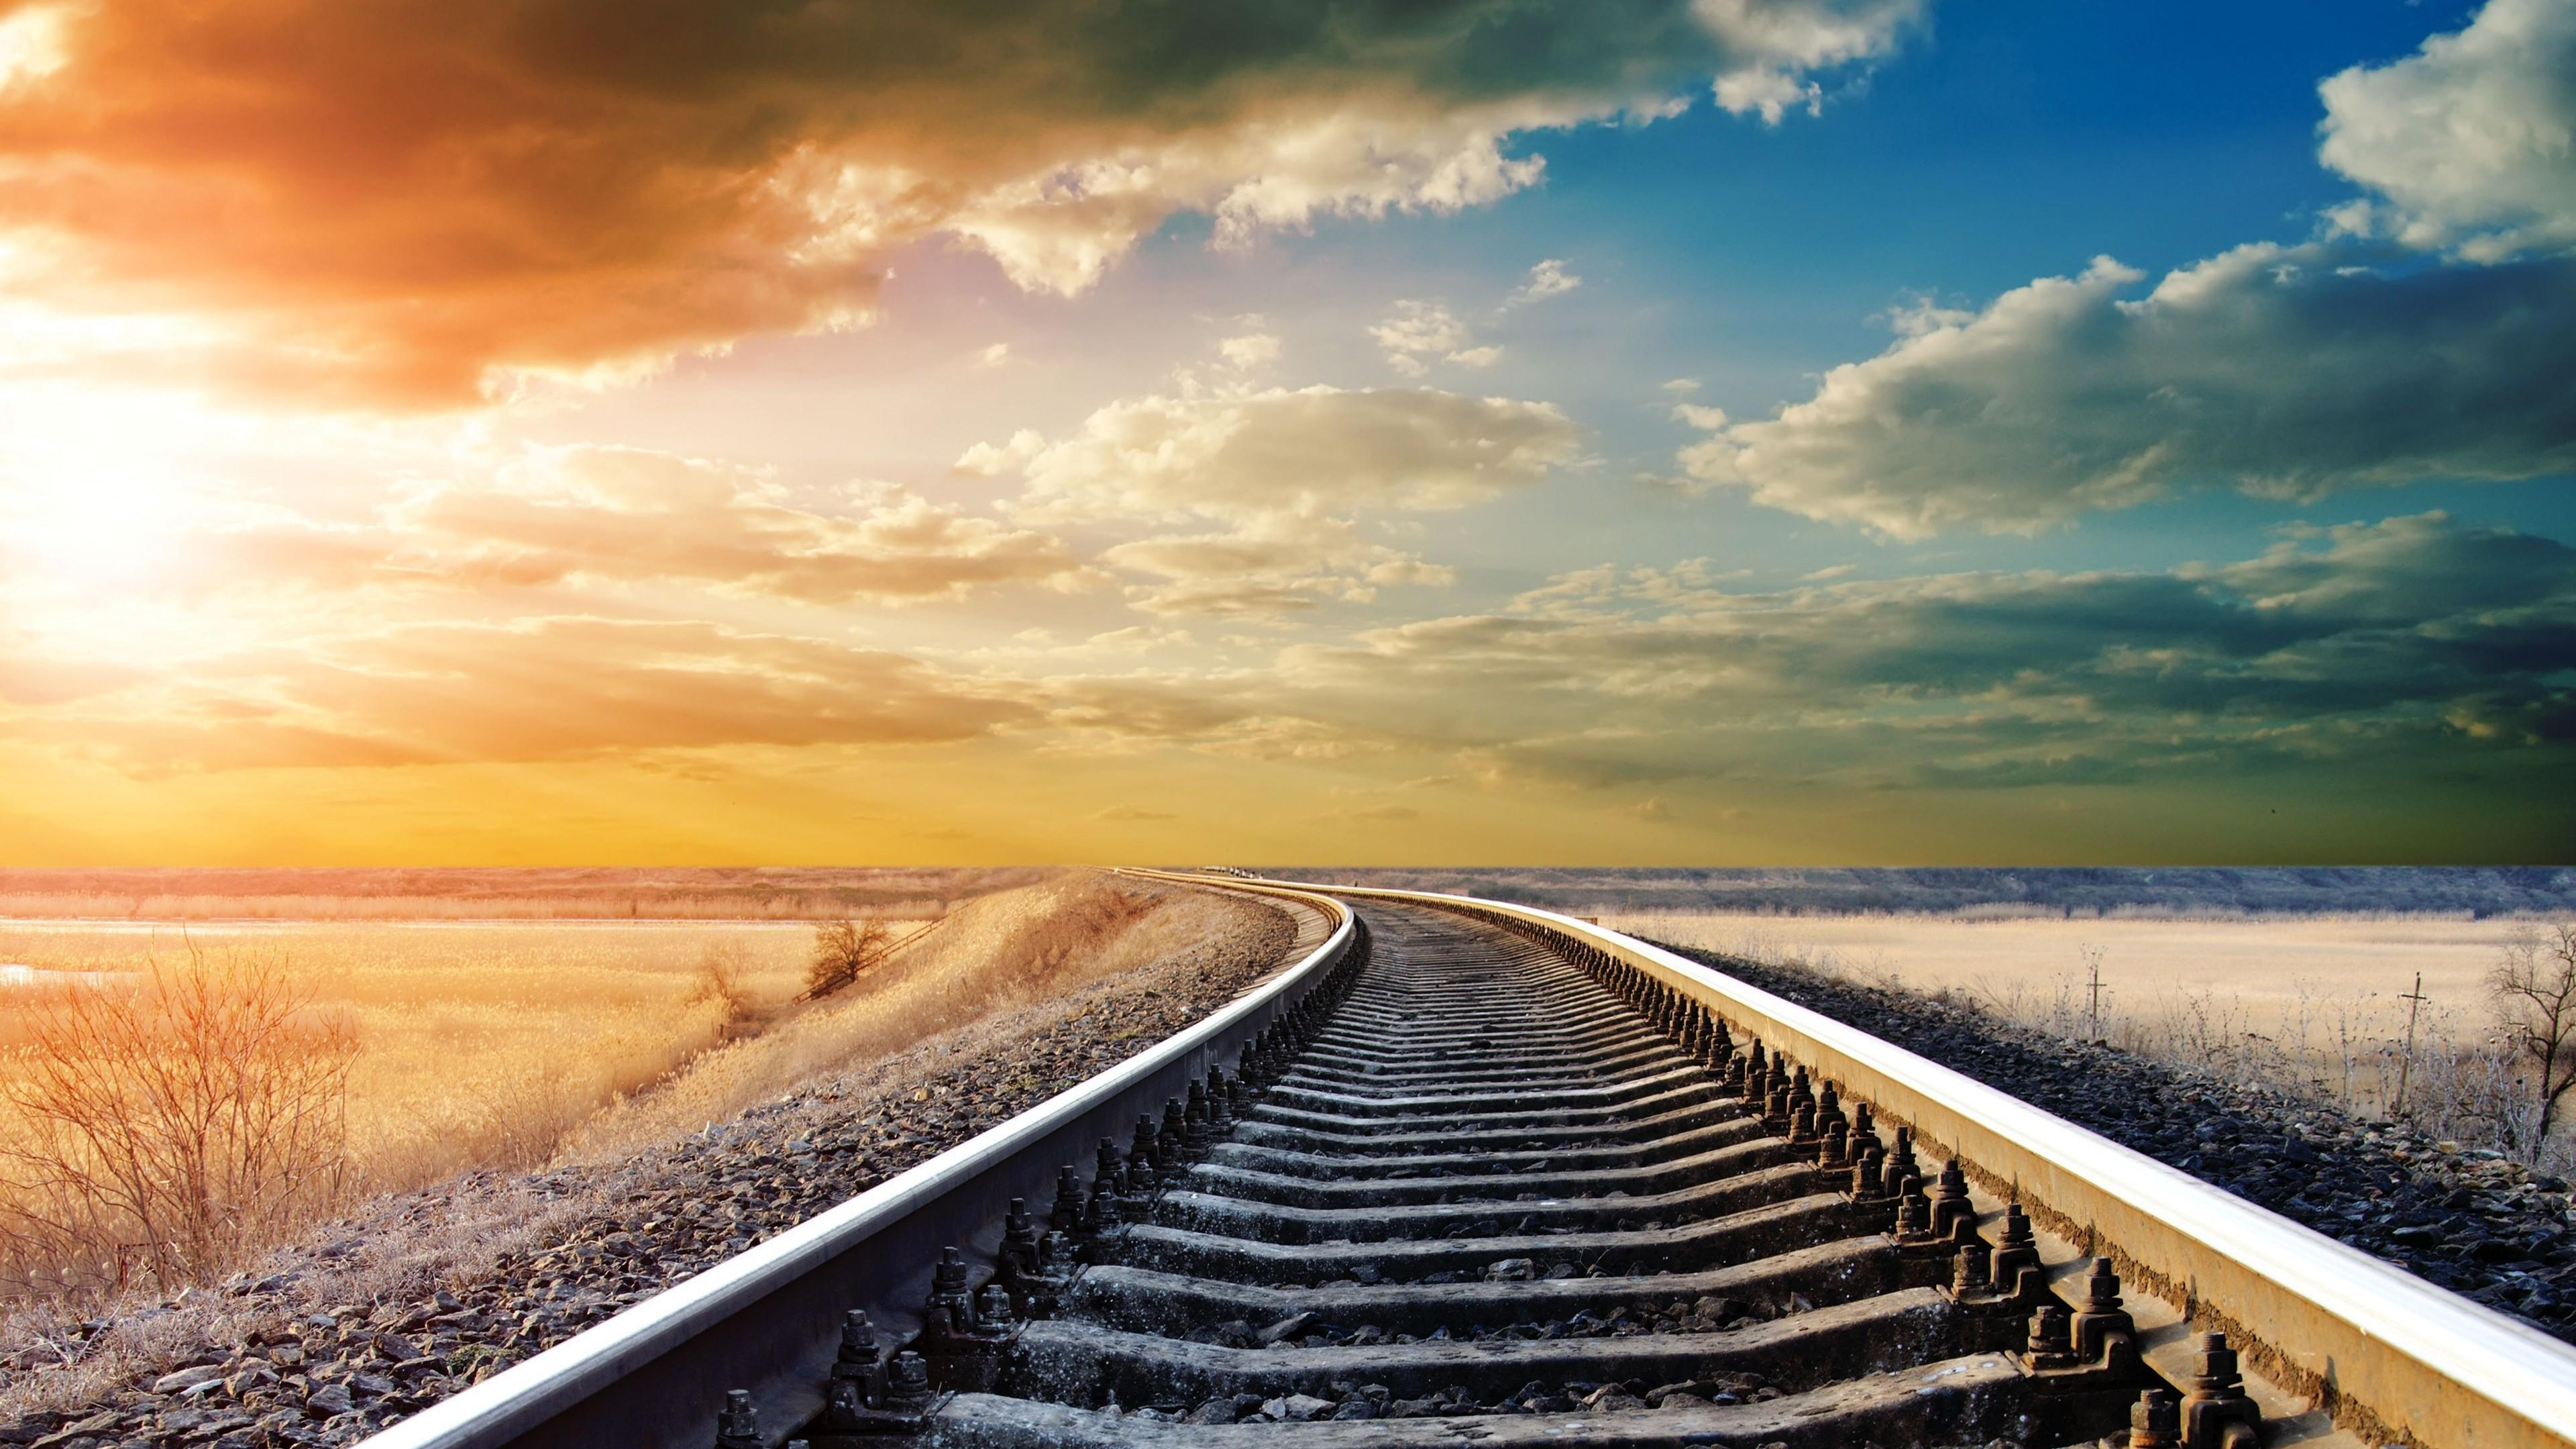 Endless Train Tracks In The Prairie Wallpaper | Wallpaper Studio ...